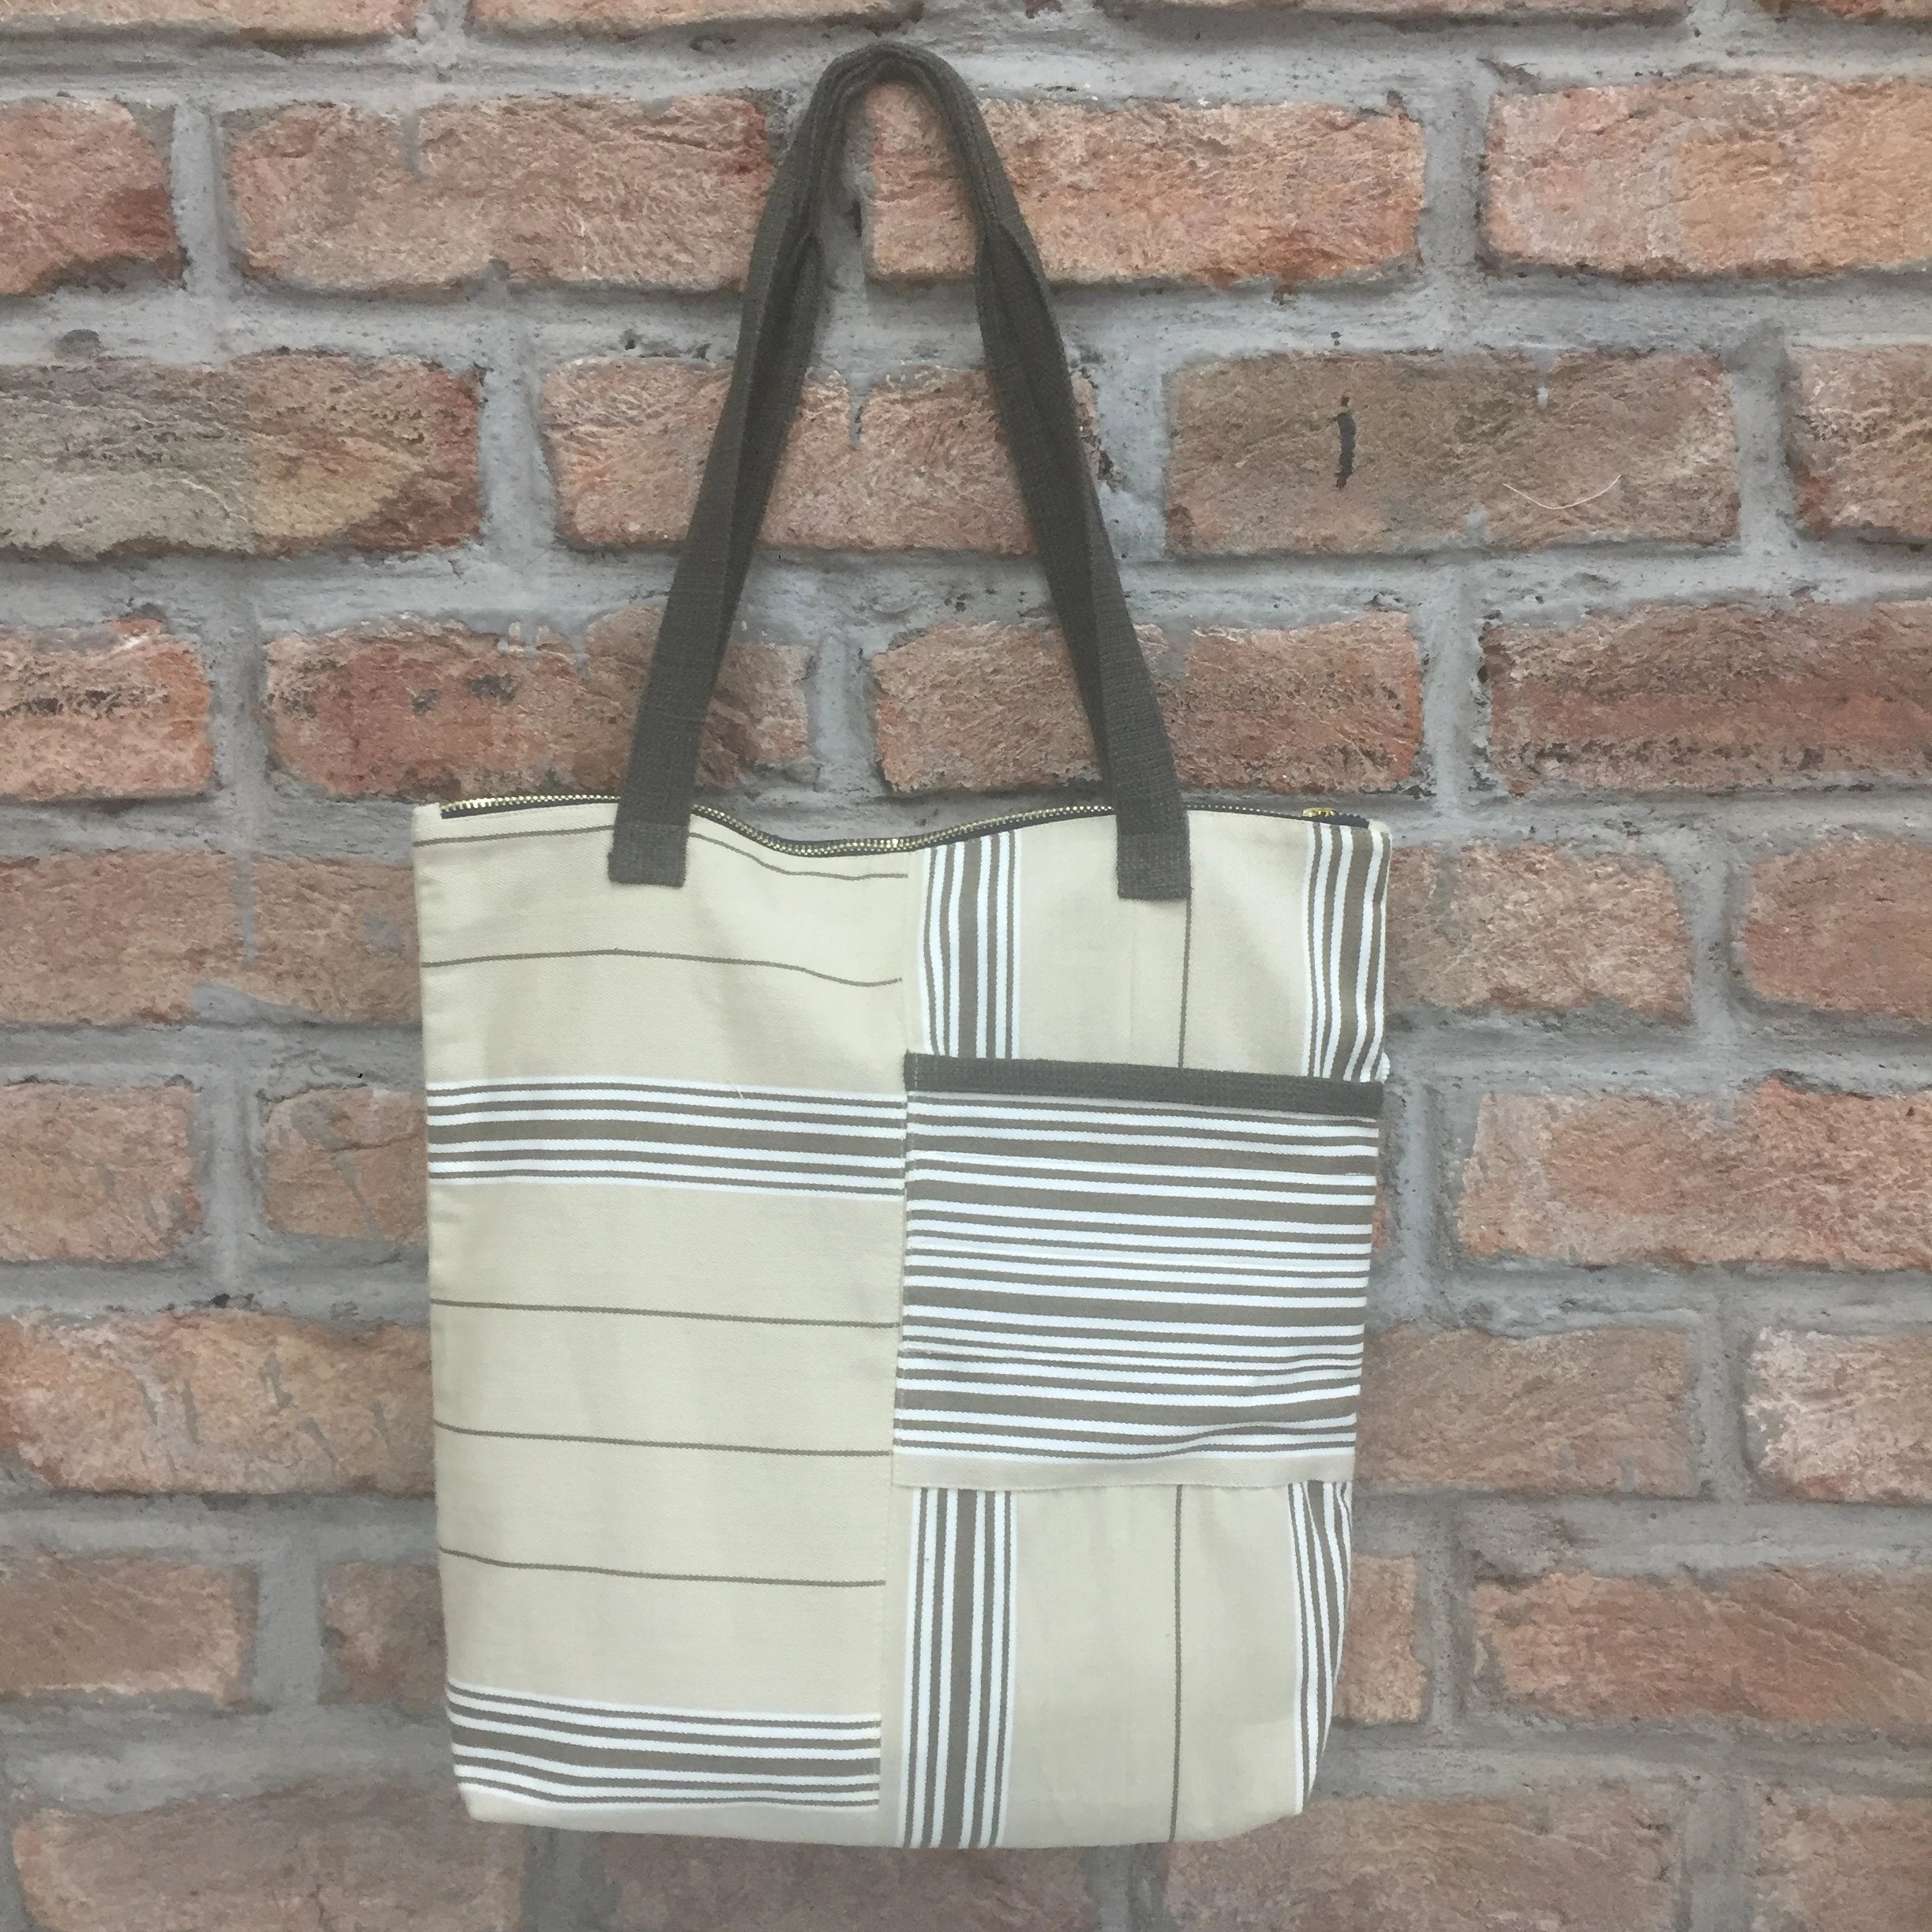 Tote Bag with Pocket